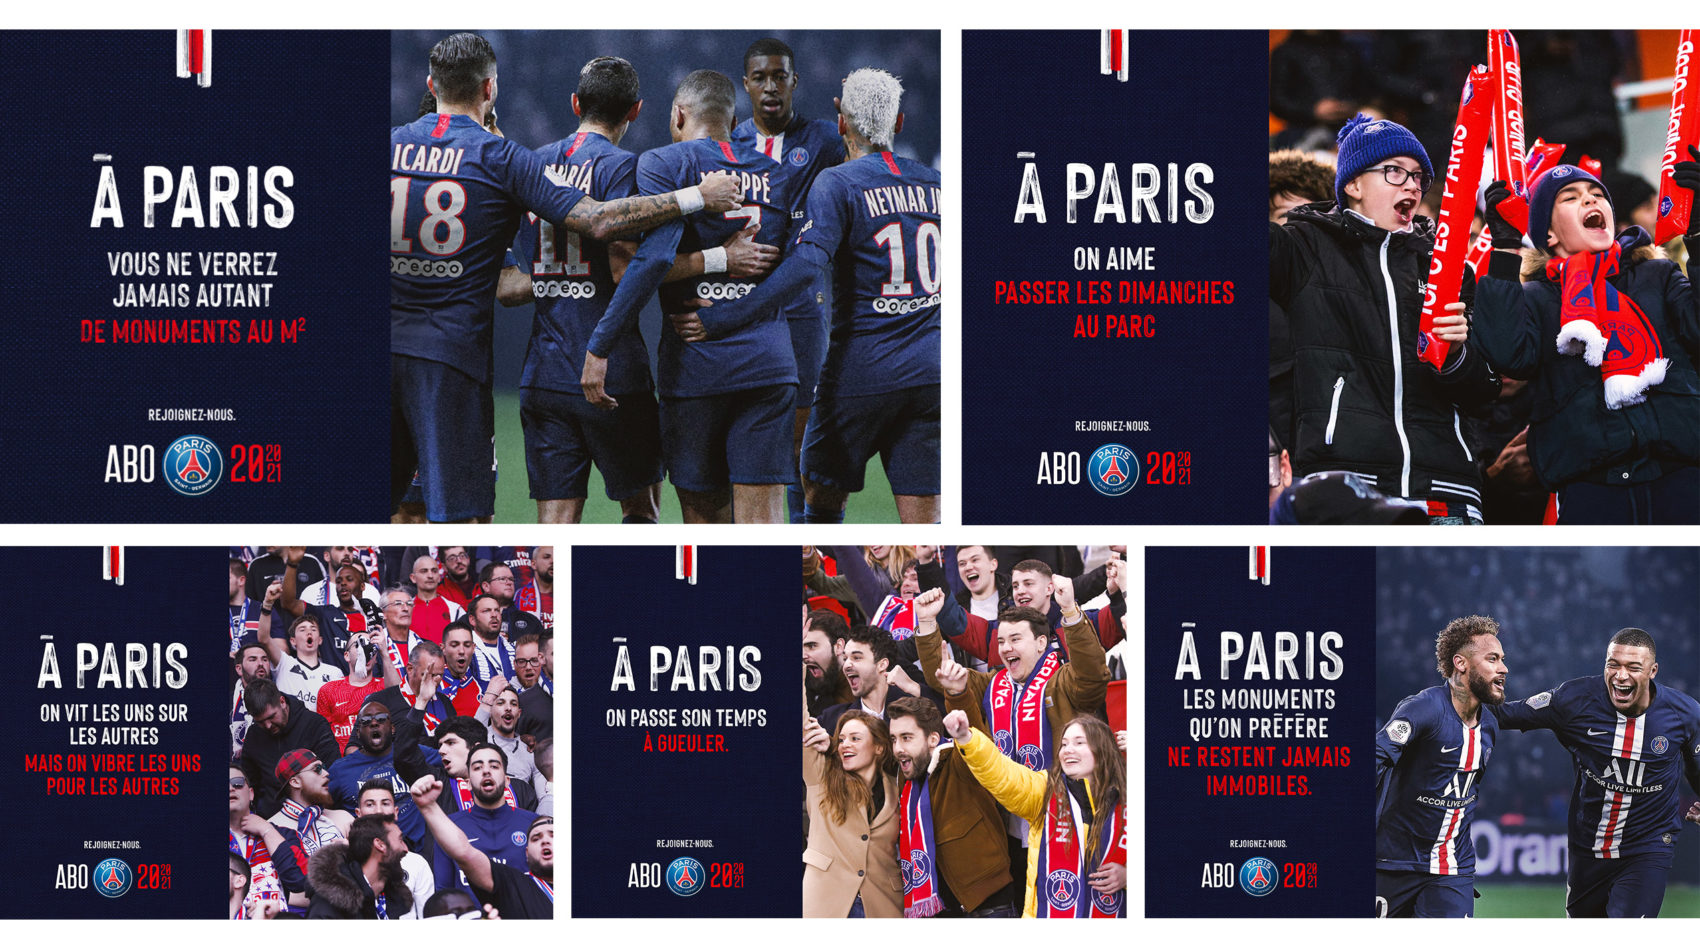 Visuel_montage_joueurs_supporters_campagne_abonnement_communication_marketing_paris_saint_germain_2020_21_parc_des_princes_supporters_football_psg_lafourmi